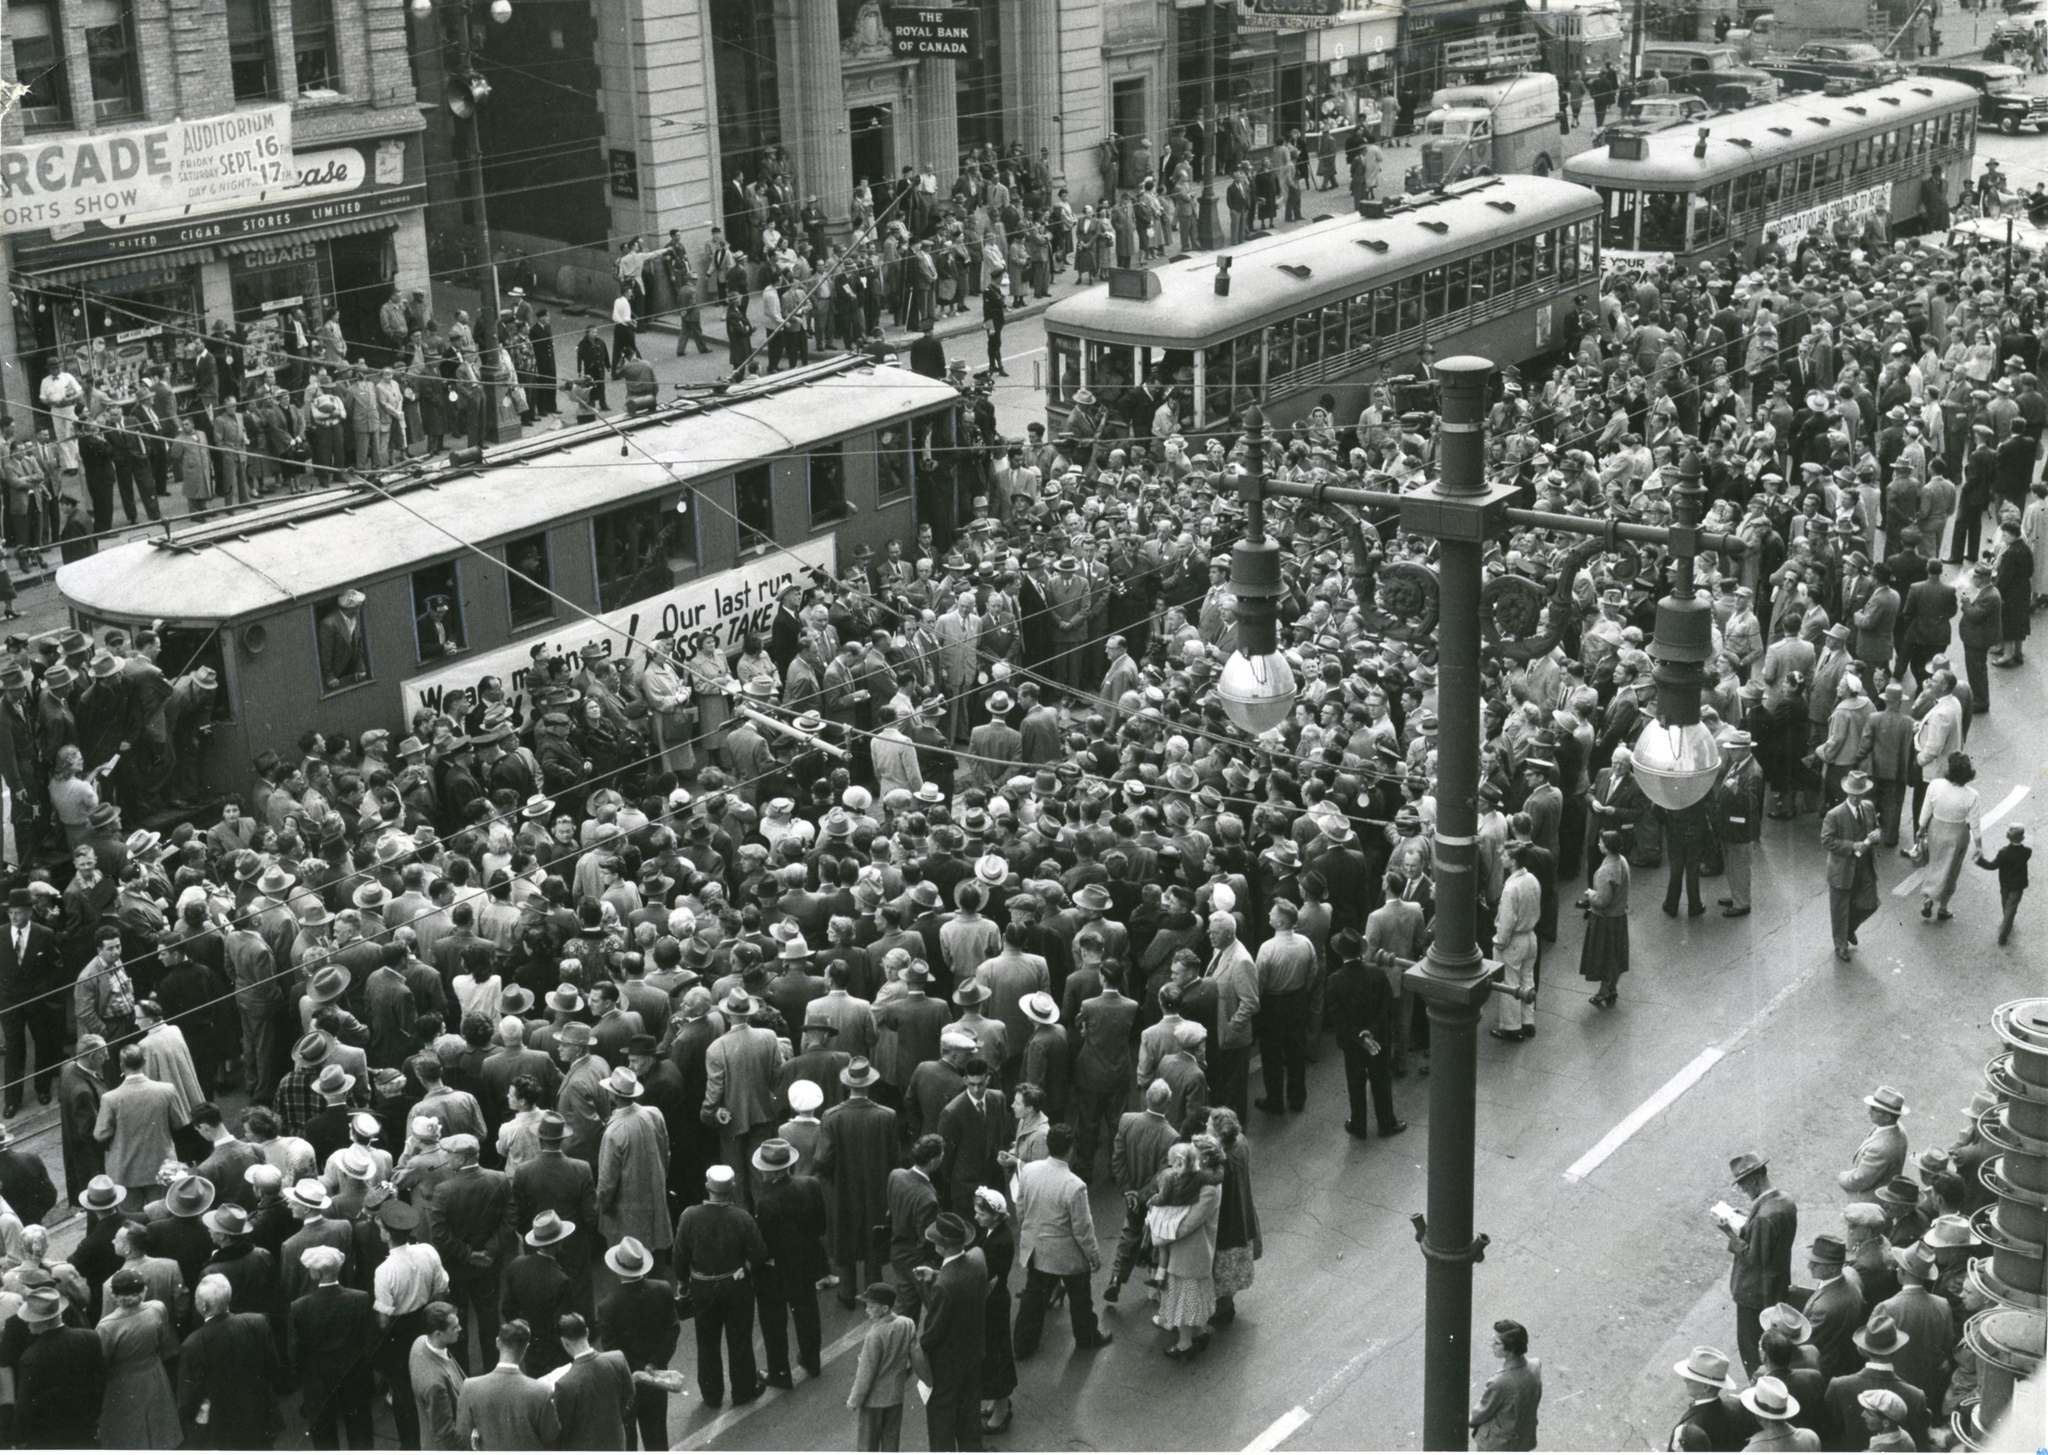 Hundreds of people jammed the street at Portage and Main to witness the final ceremony marking the end of streetcars in Winnipeg in September 1955. (Winnipeg Free Press Files)